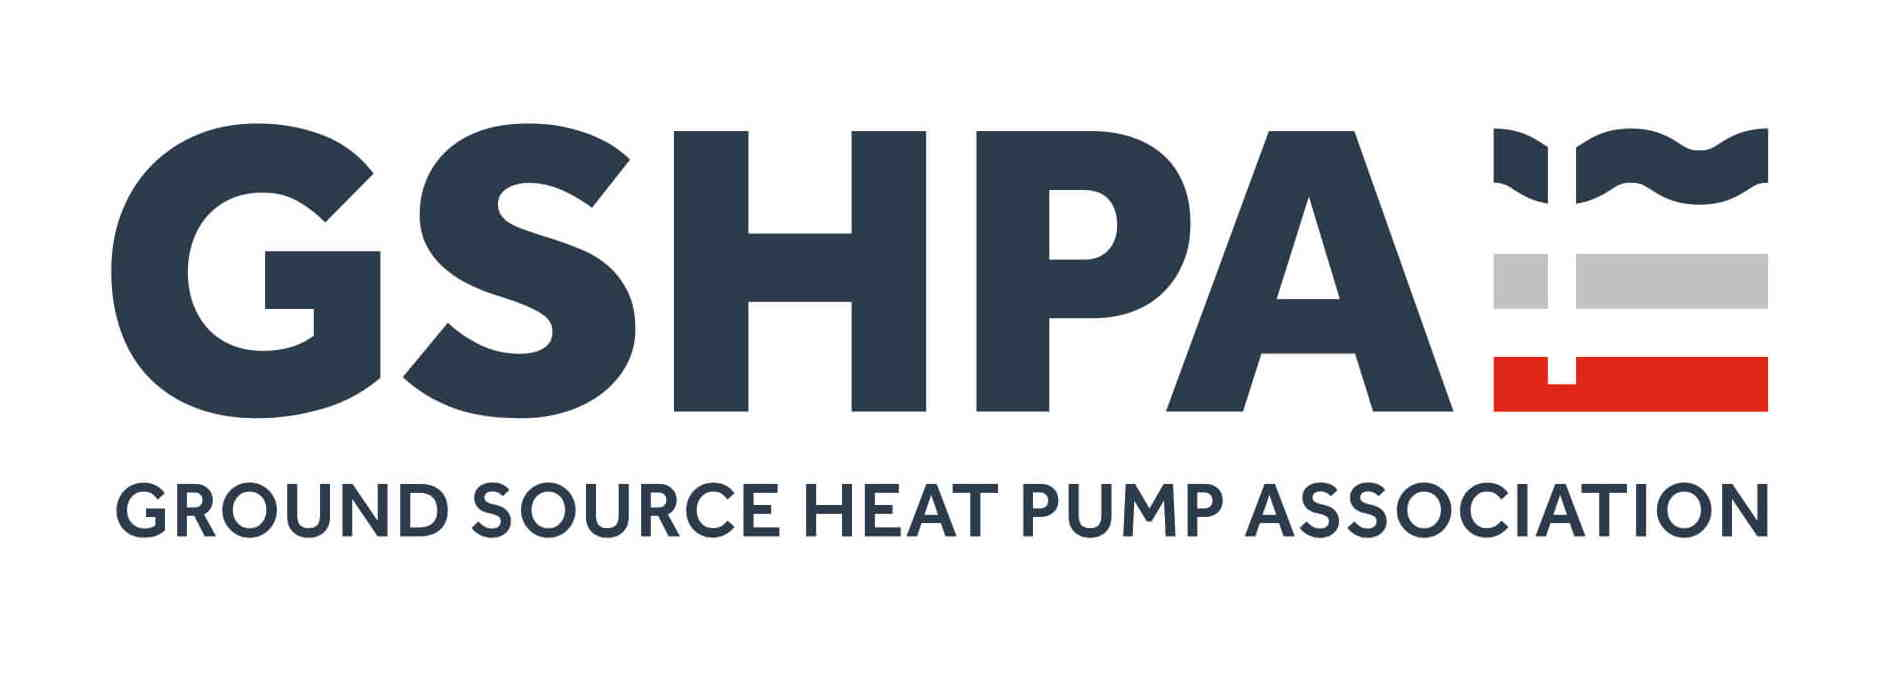 Ground Source Heat Pump Association logo